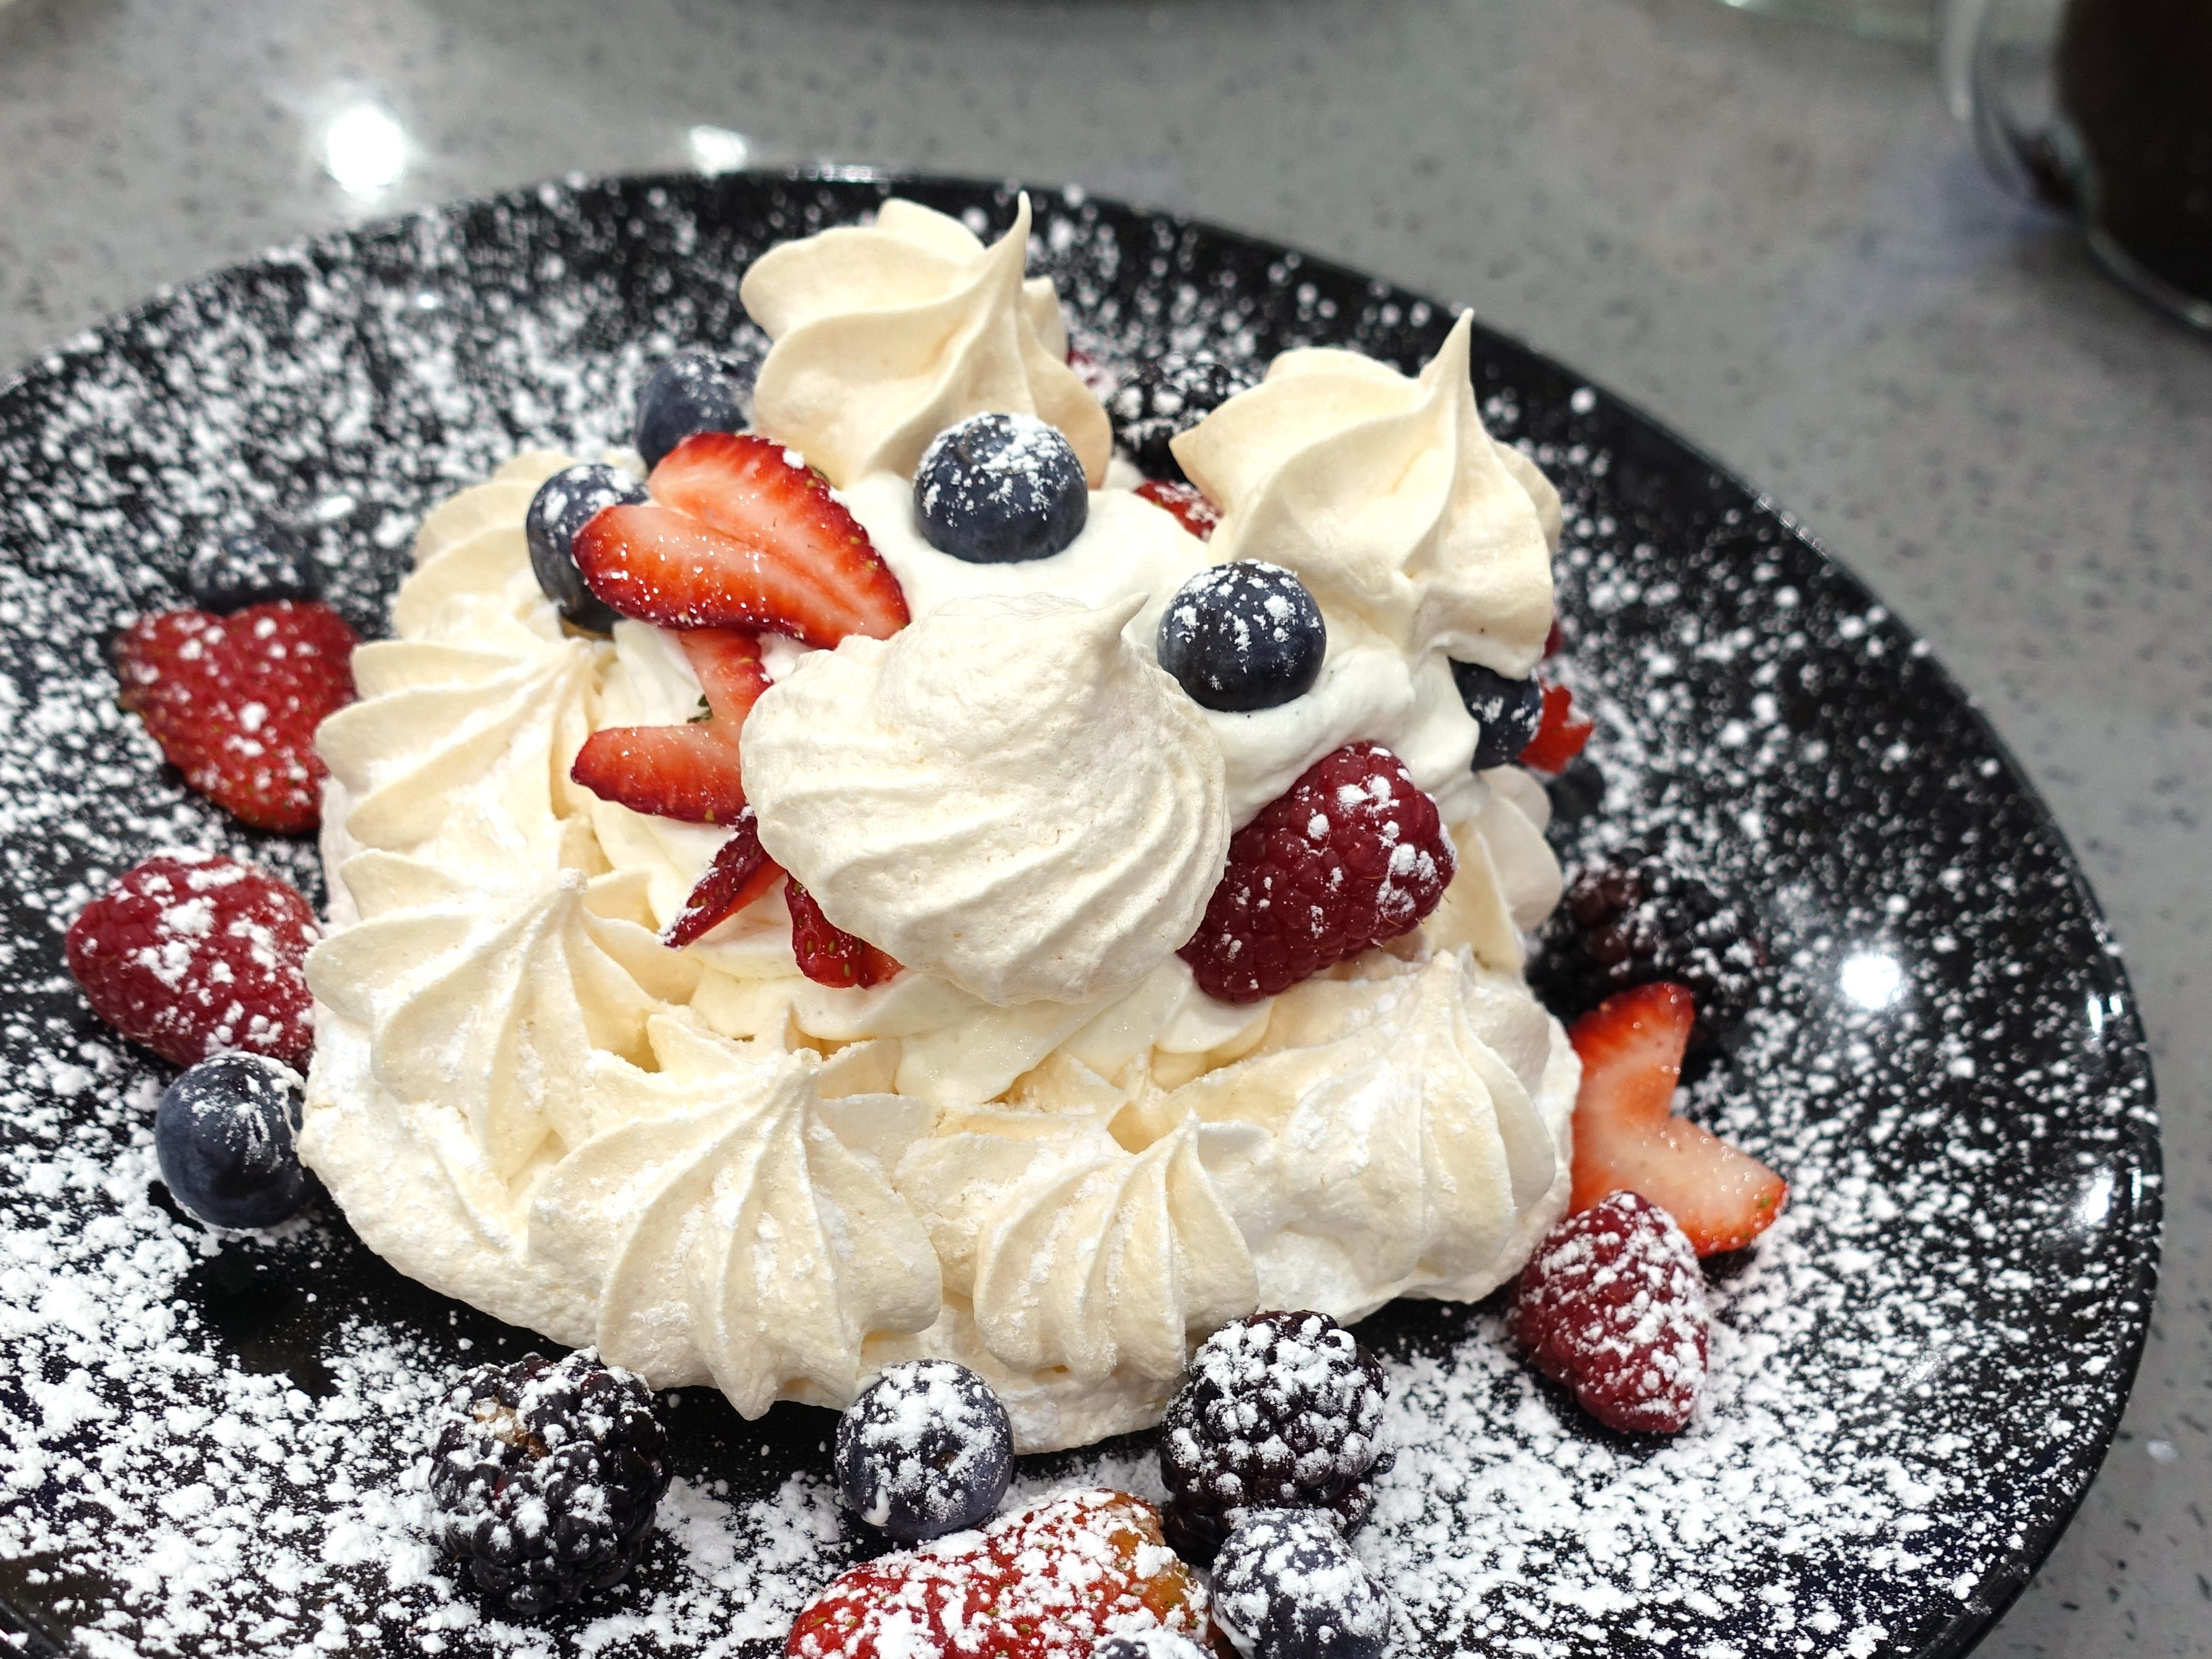 Red, white and blue pavlova with meringue, whipped cream and fresh berries at Sweetest Season Artisan Eatery in Tempe.